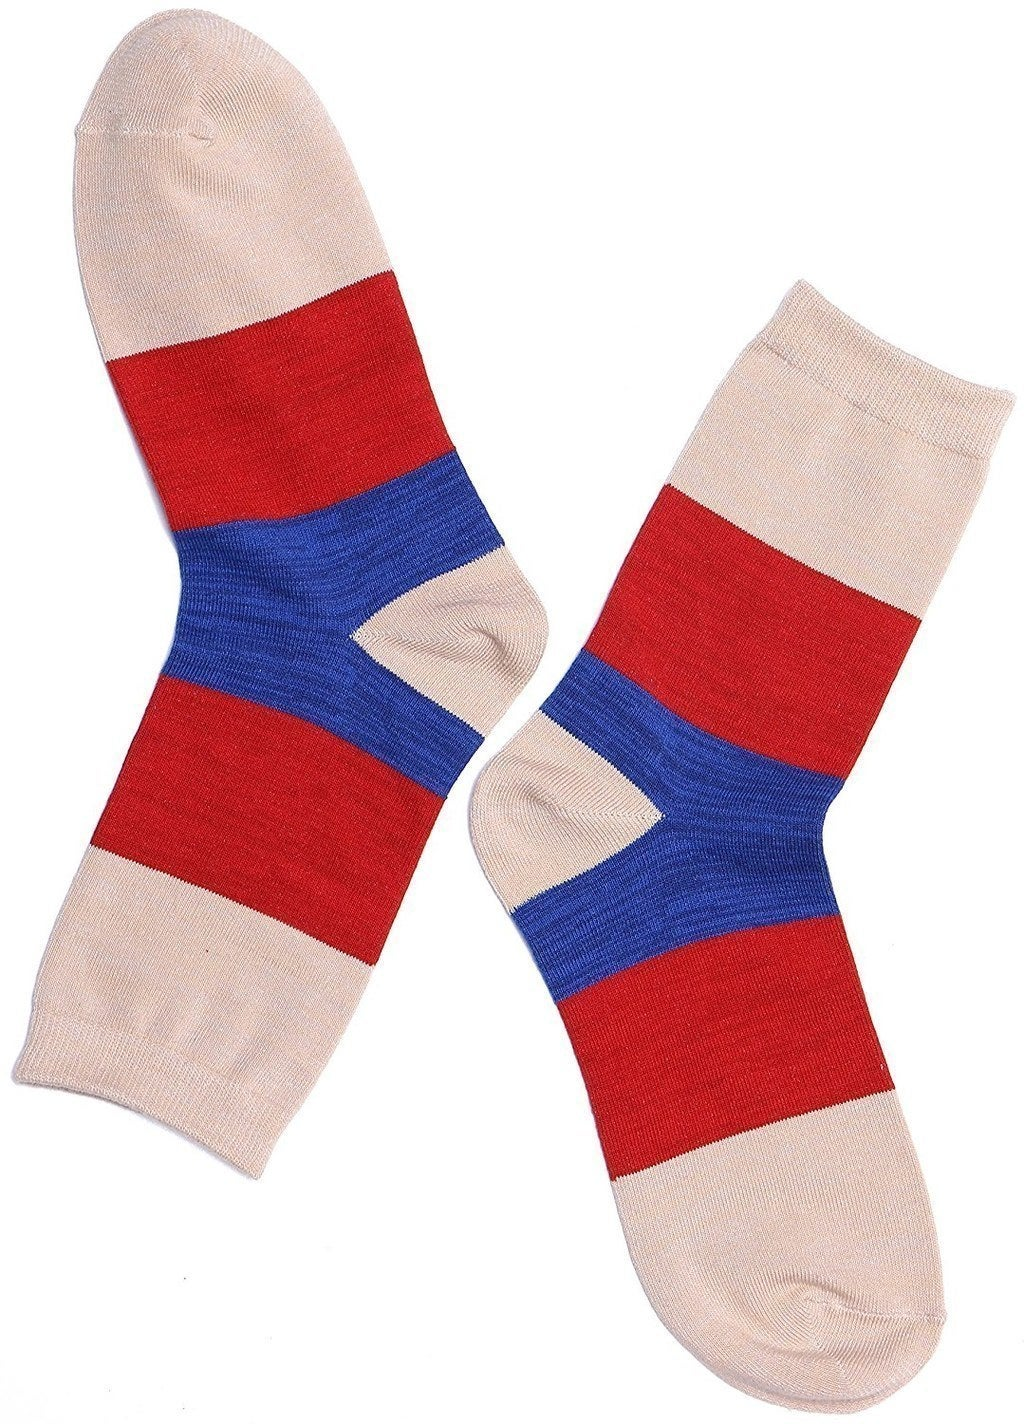 a22680cdff90 23 Of The Best Socks You Can Get On Amazon